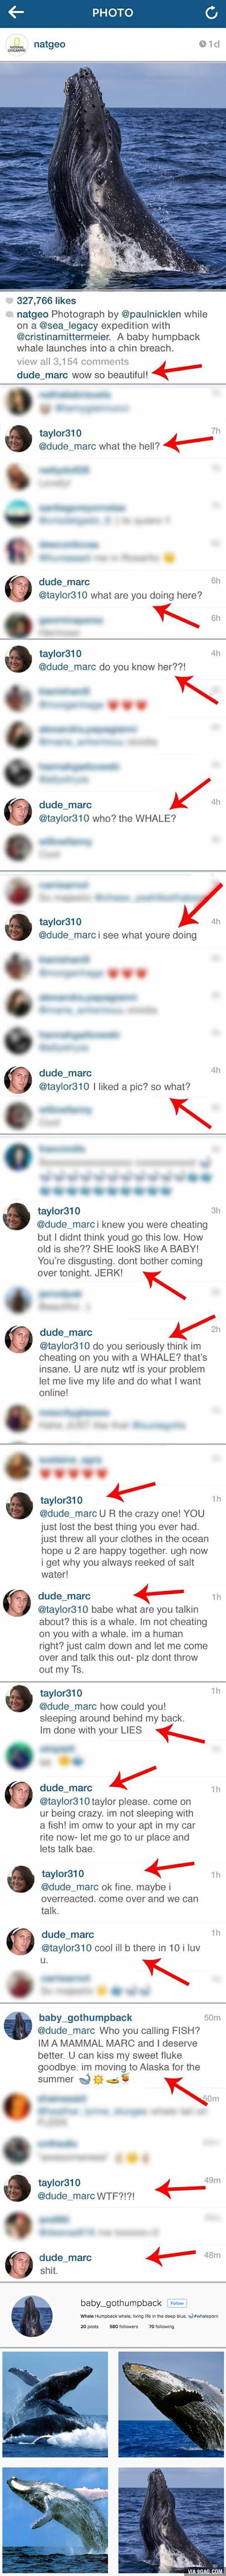 """You're cheating on me with a whale?!"" Girl exposes her boyfriend's sidechick on Instagram"